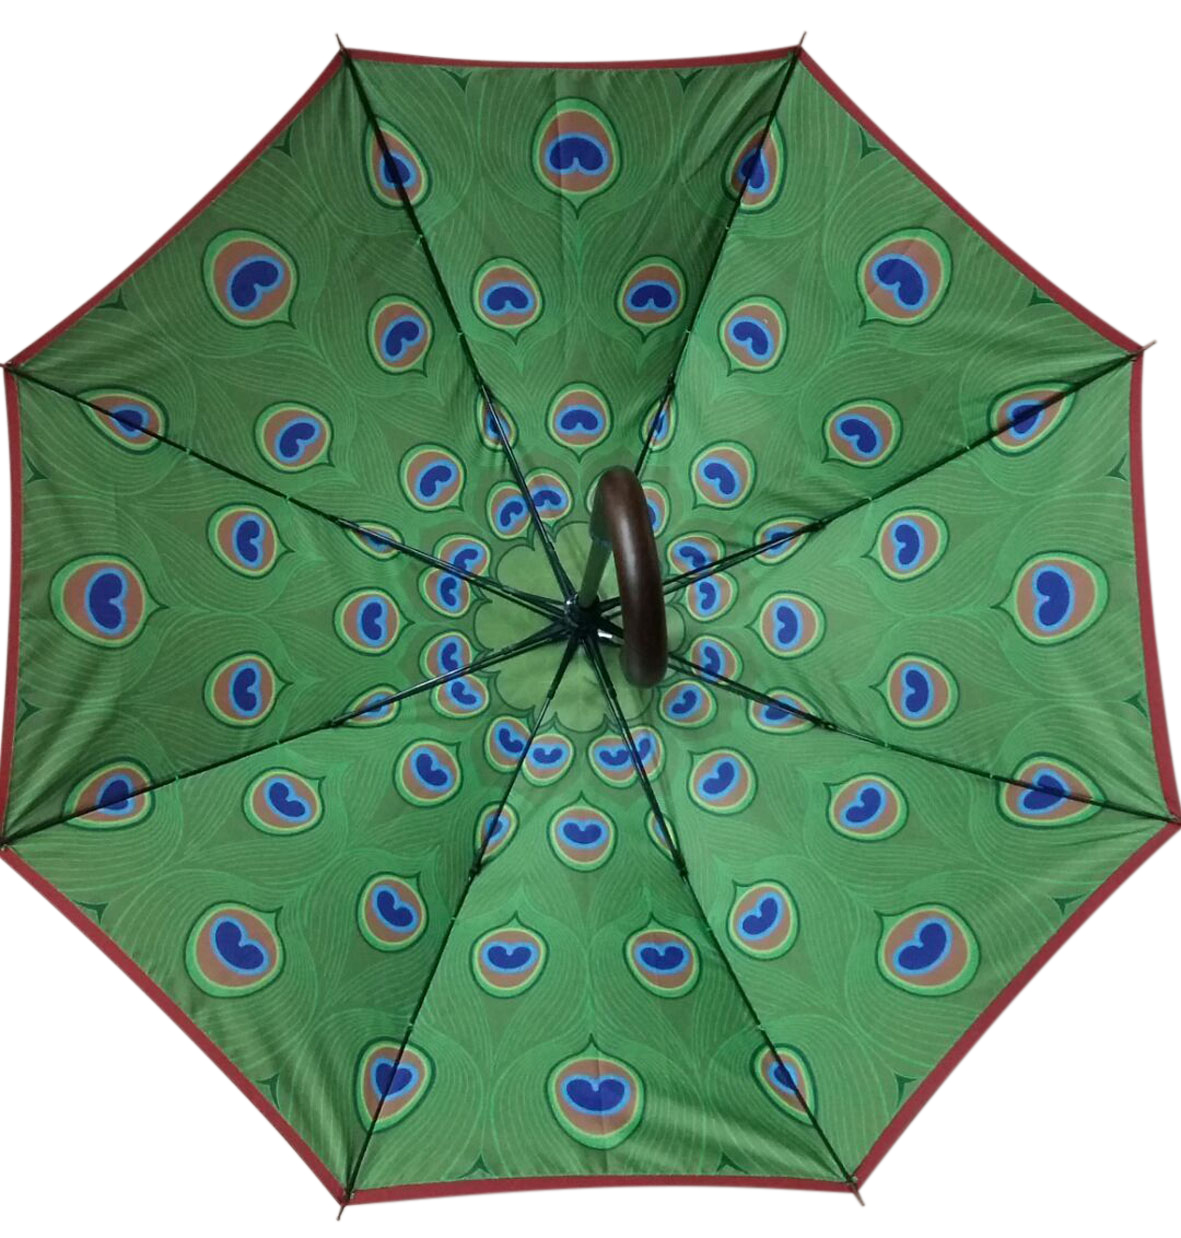 tailor made Internal printed peacock graphic umbrella